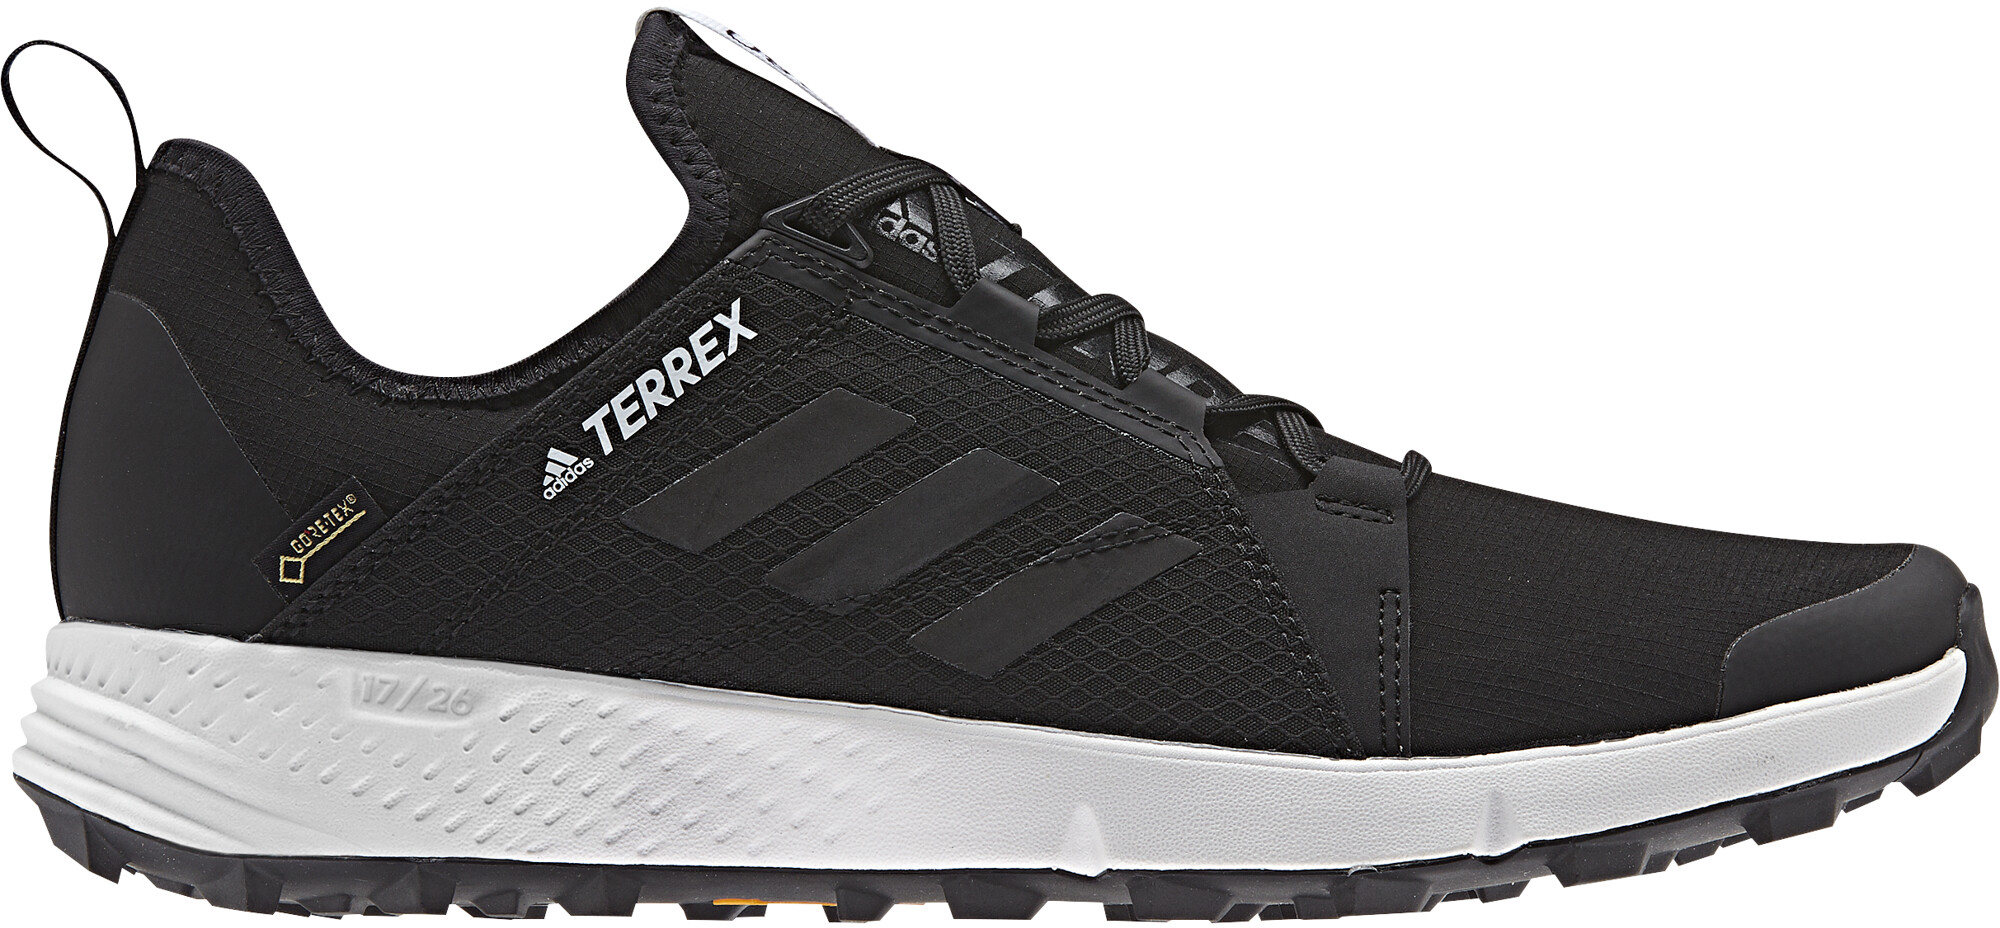 23ea80c7b1f900 adidas TERREX Agravic Speed GTX Shoes Men core black core black ftwr white